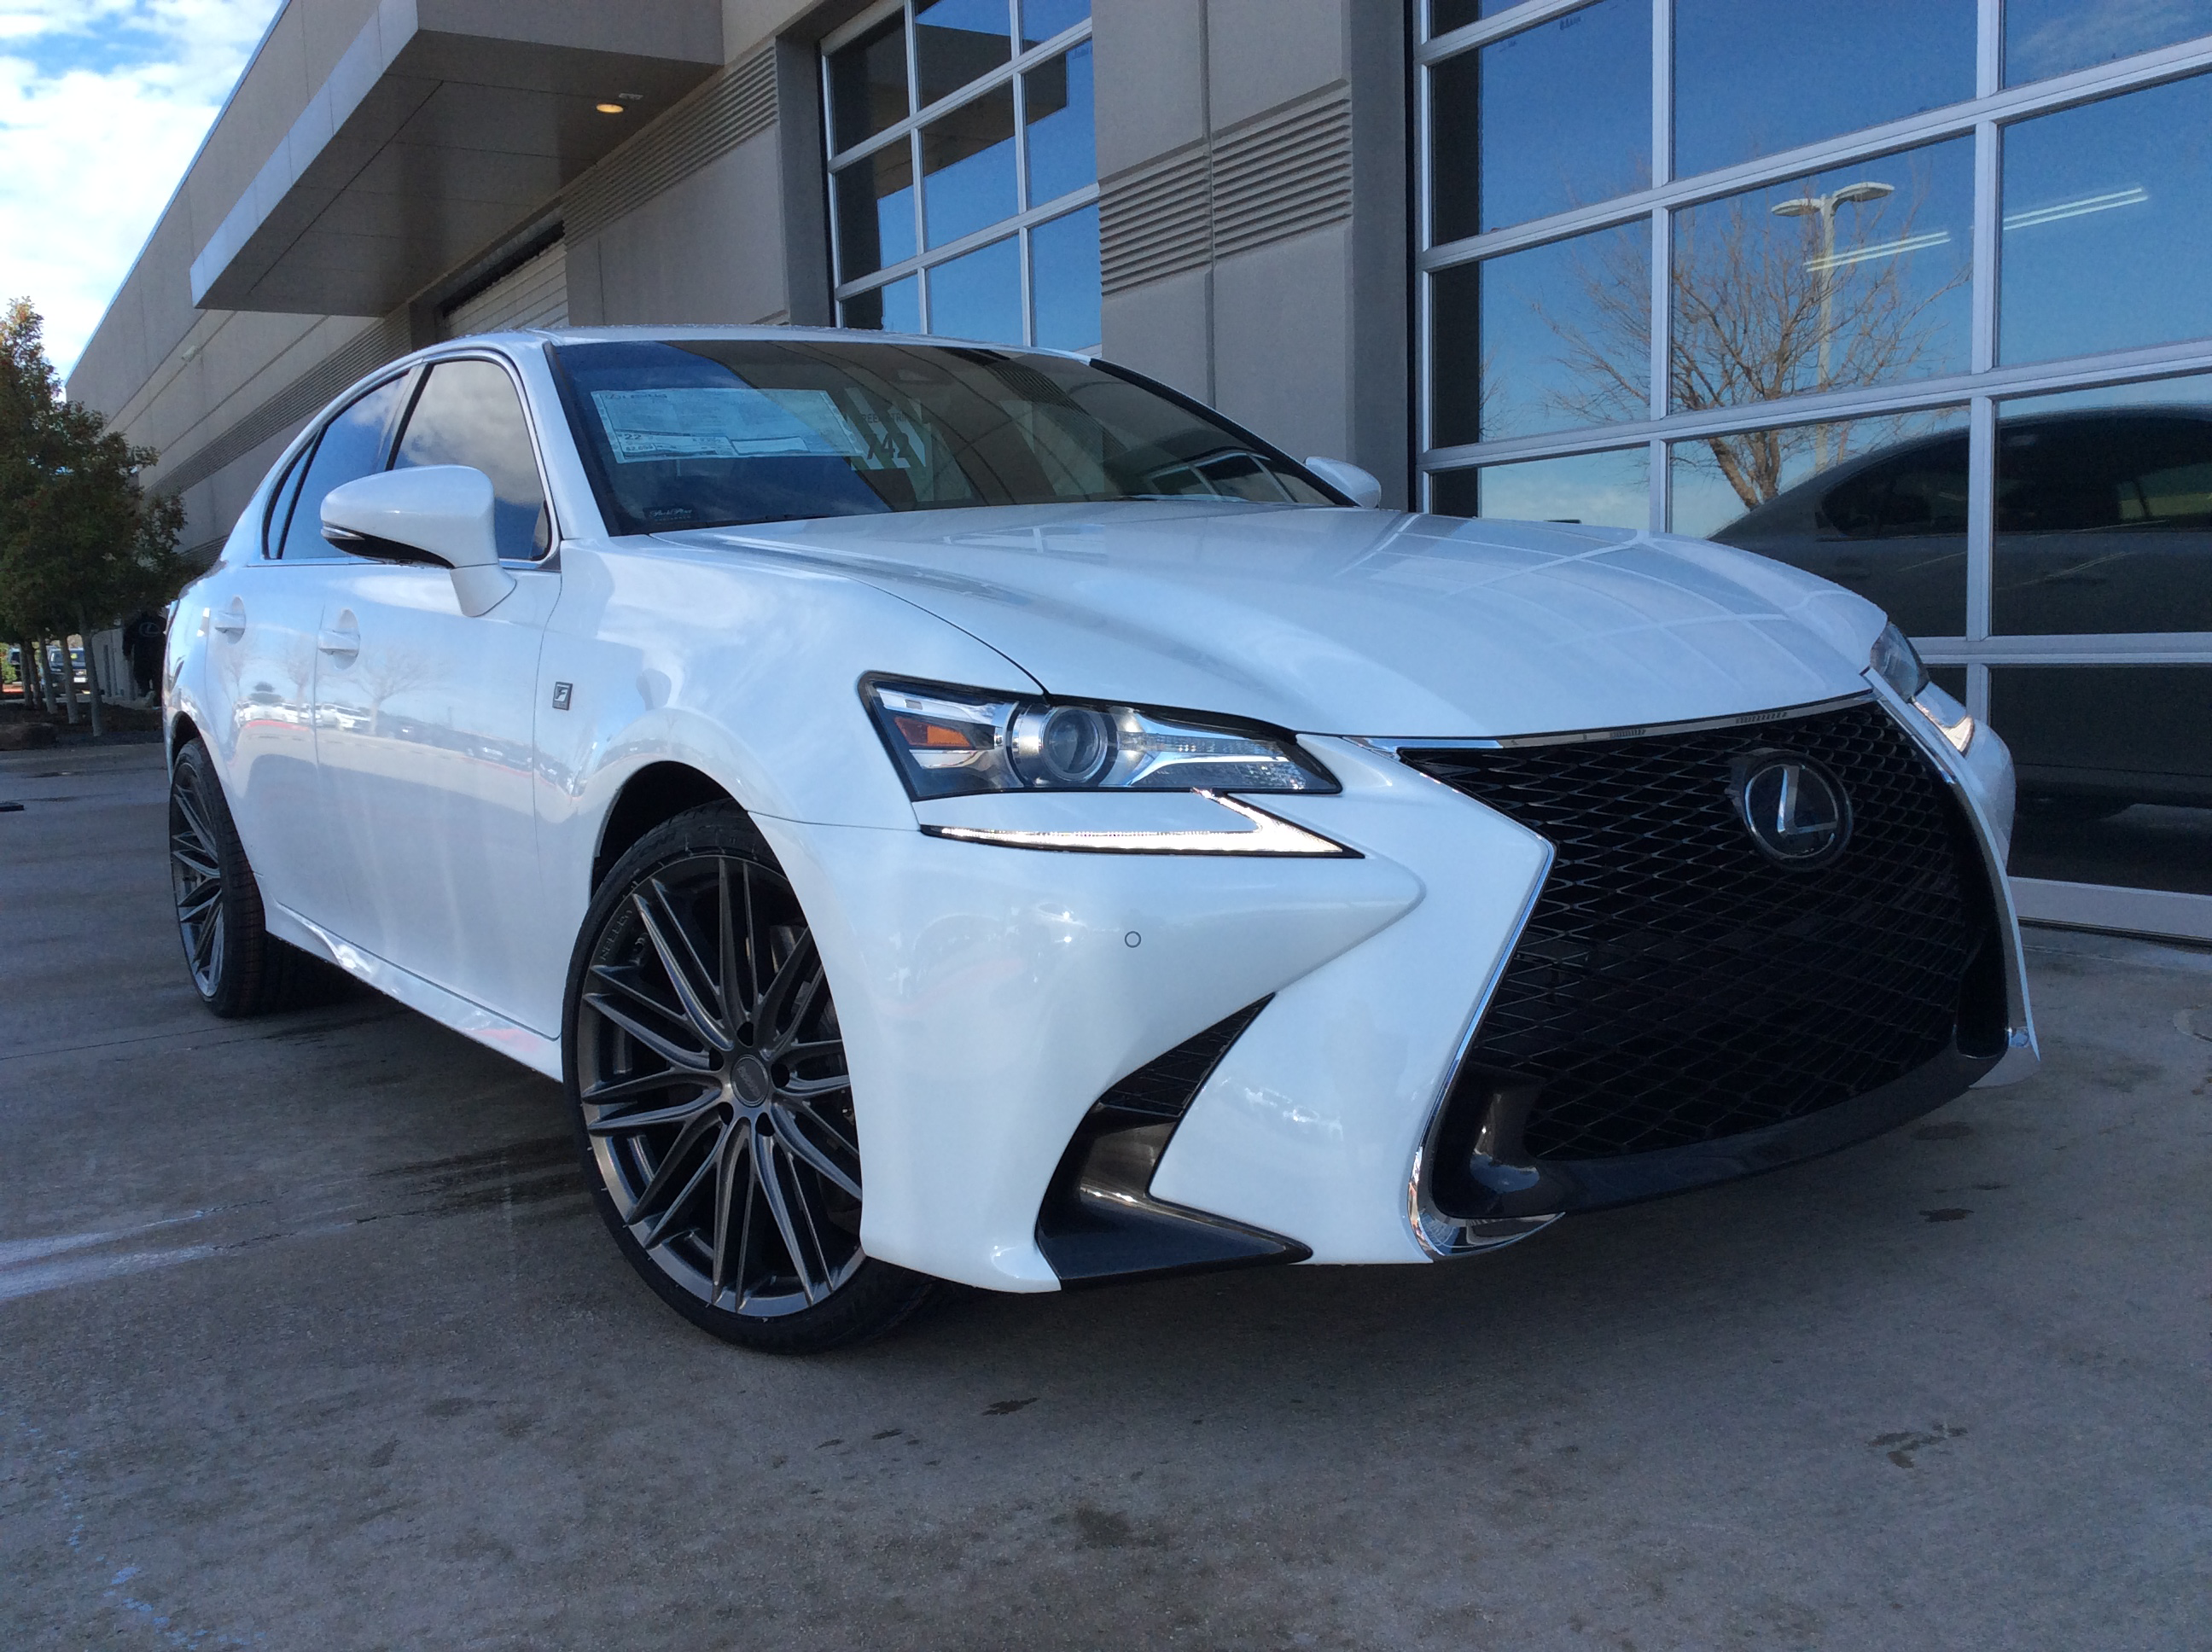 2019 Lexus Gs F Sport With Staggered Vossen Vfs 4 Wrapped In Continental Tires 20x9 Front 20x10 5 Rear 245 35 20 Front 285 Lexus Tacoma Truck Automotive Design